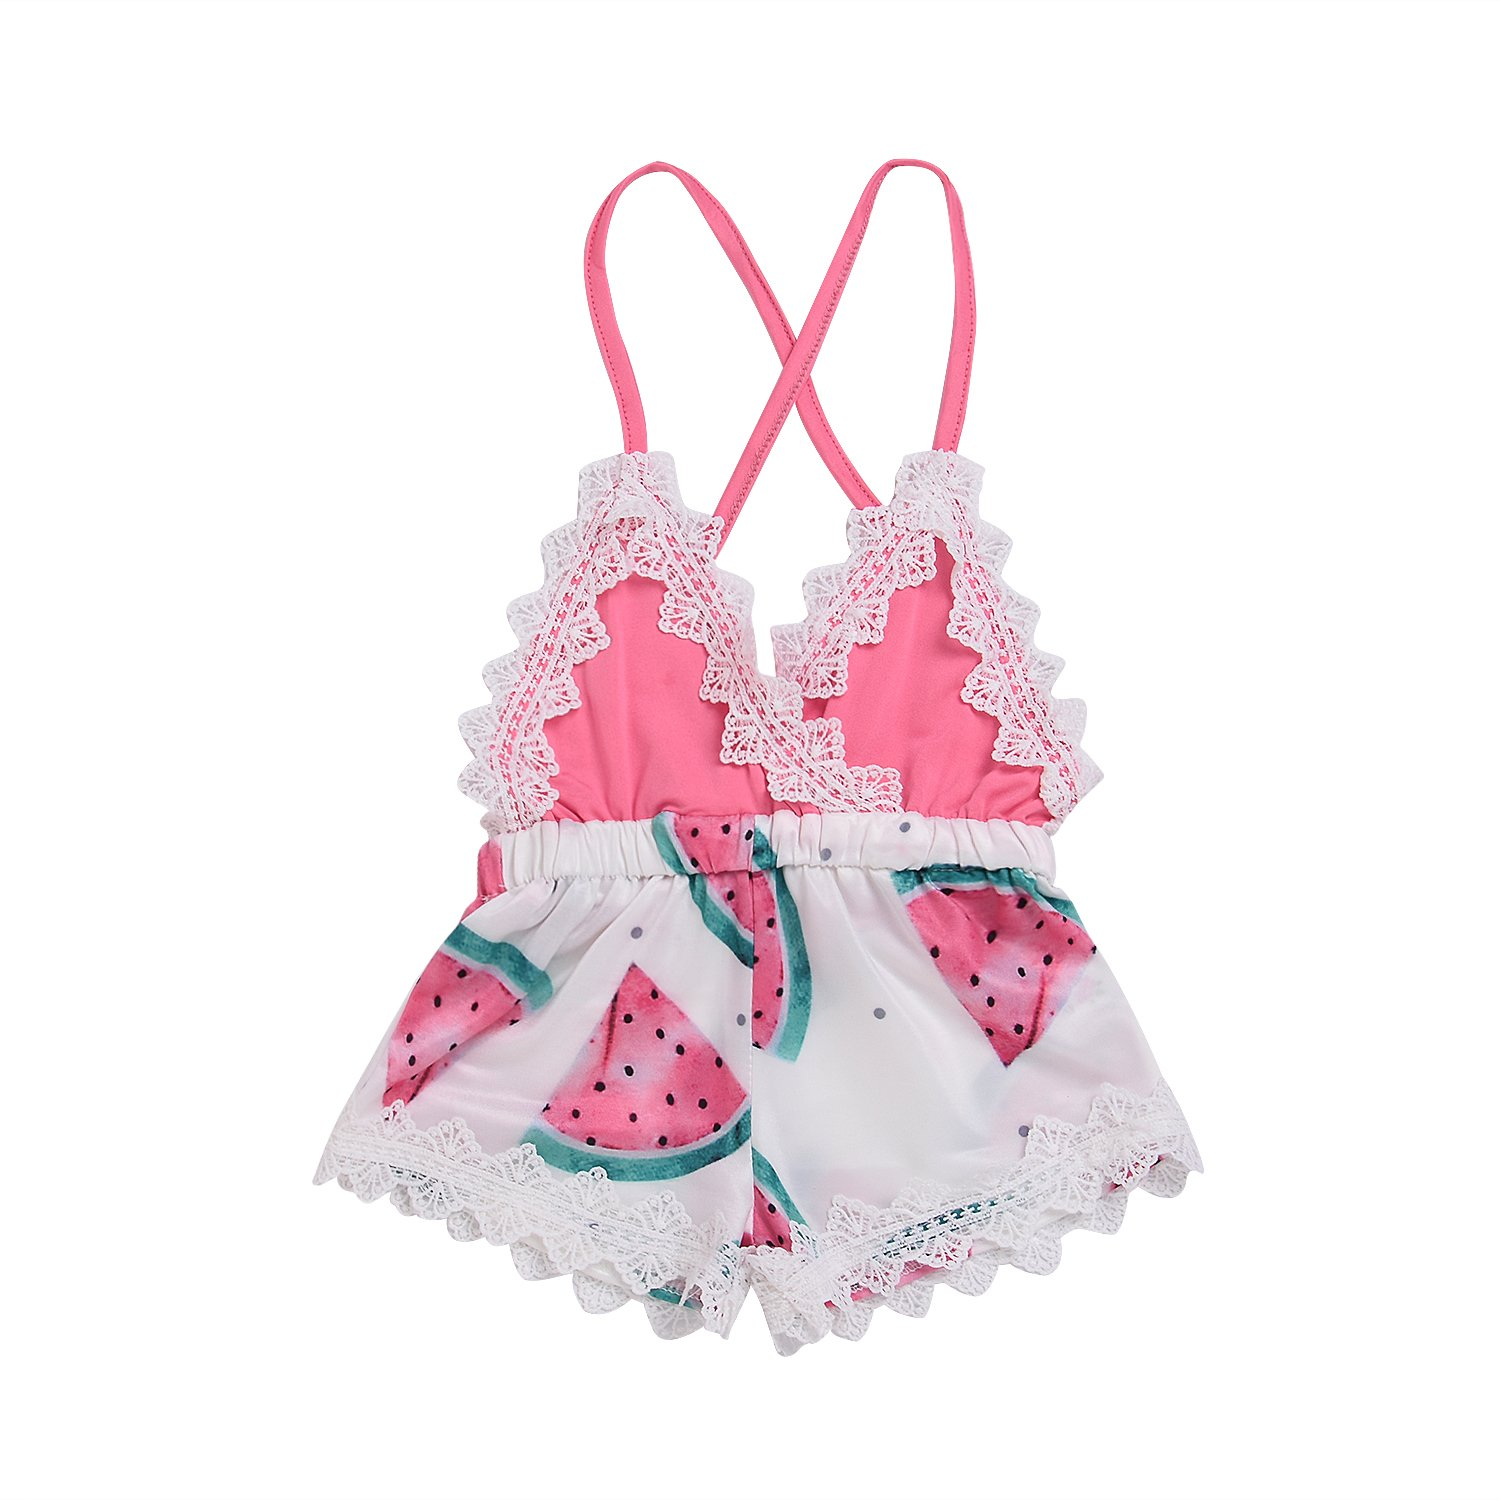 Toddler Baby Girl Clothes 2018 Summer Cute Watermelon Print Lace Trim Backless Romper Shorts Jumpsuit (Pink, 12-24 Months)